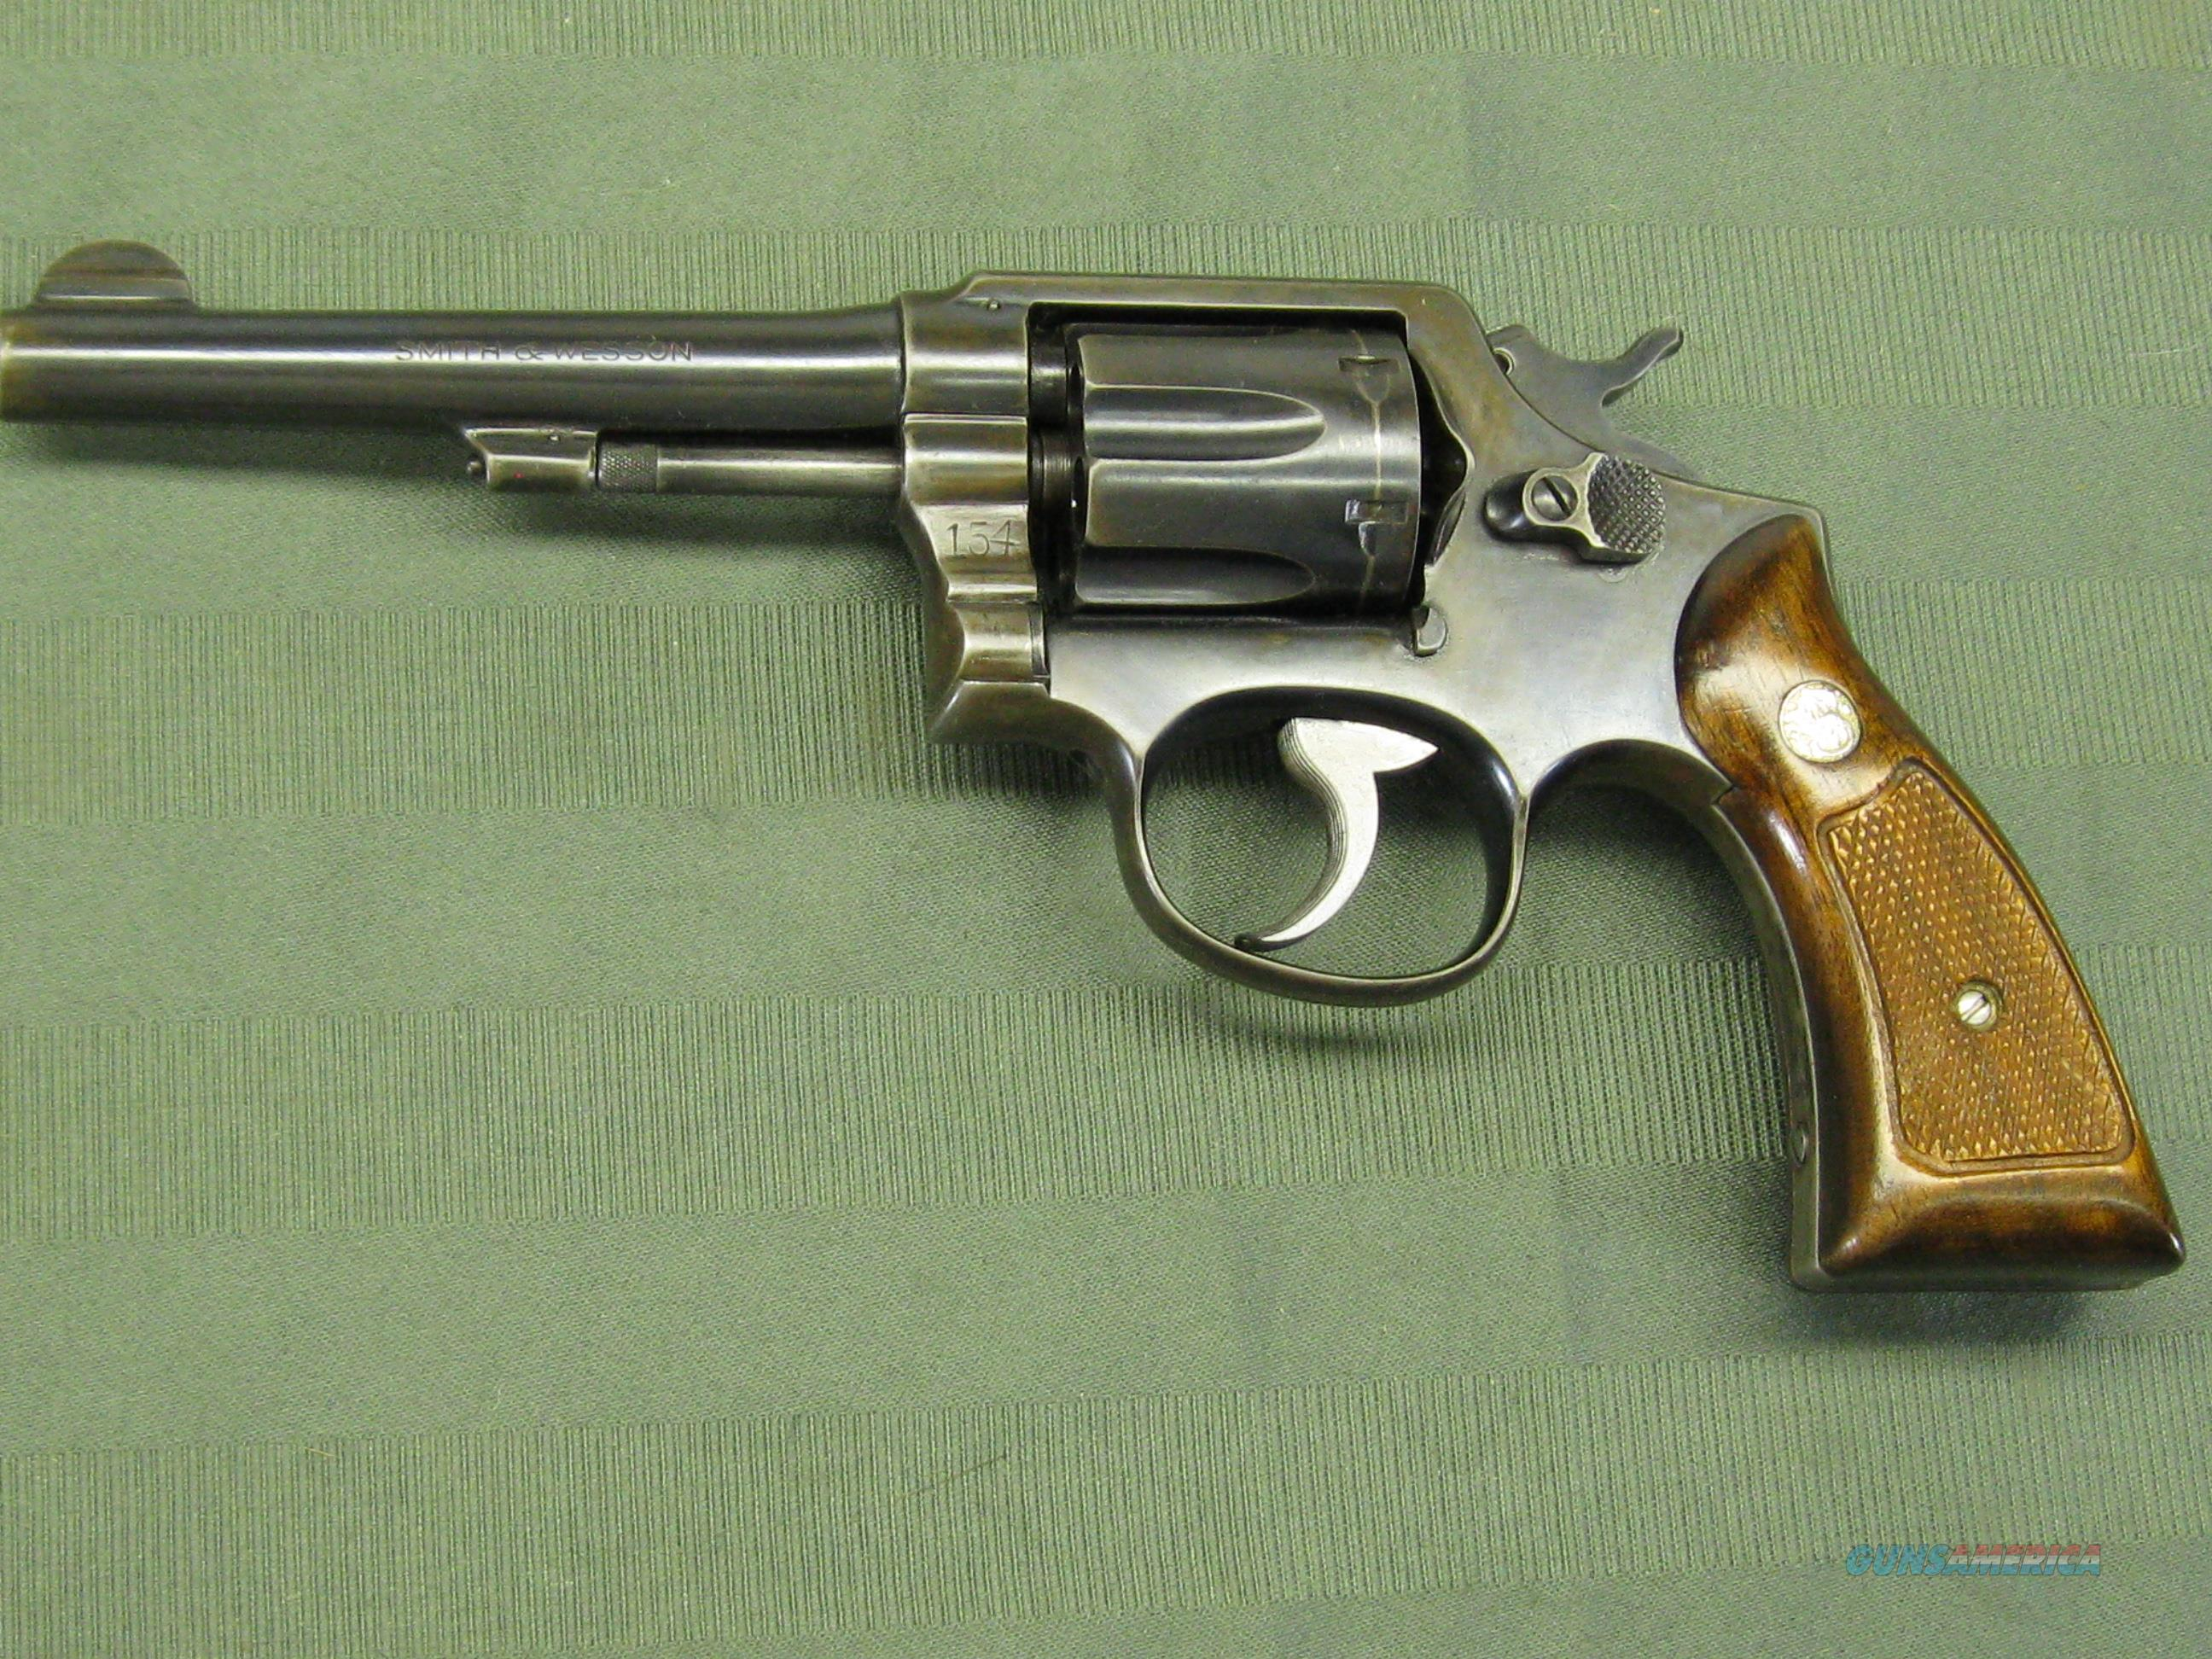 dating smith and wesson model 10 The smith & wesson model 10 the trigger return spring is a flat leaf rather than the coil spring-powered slide used in variations dating from 1905 onwards.